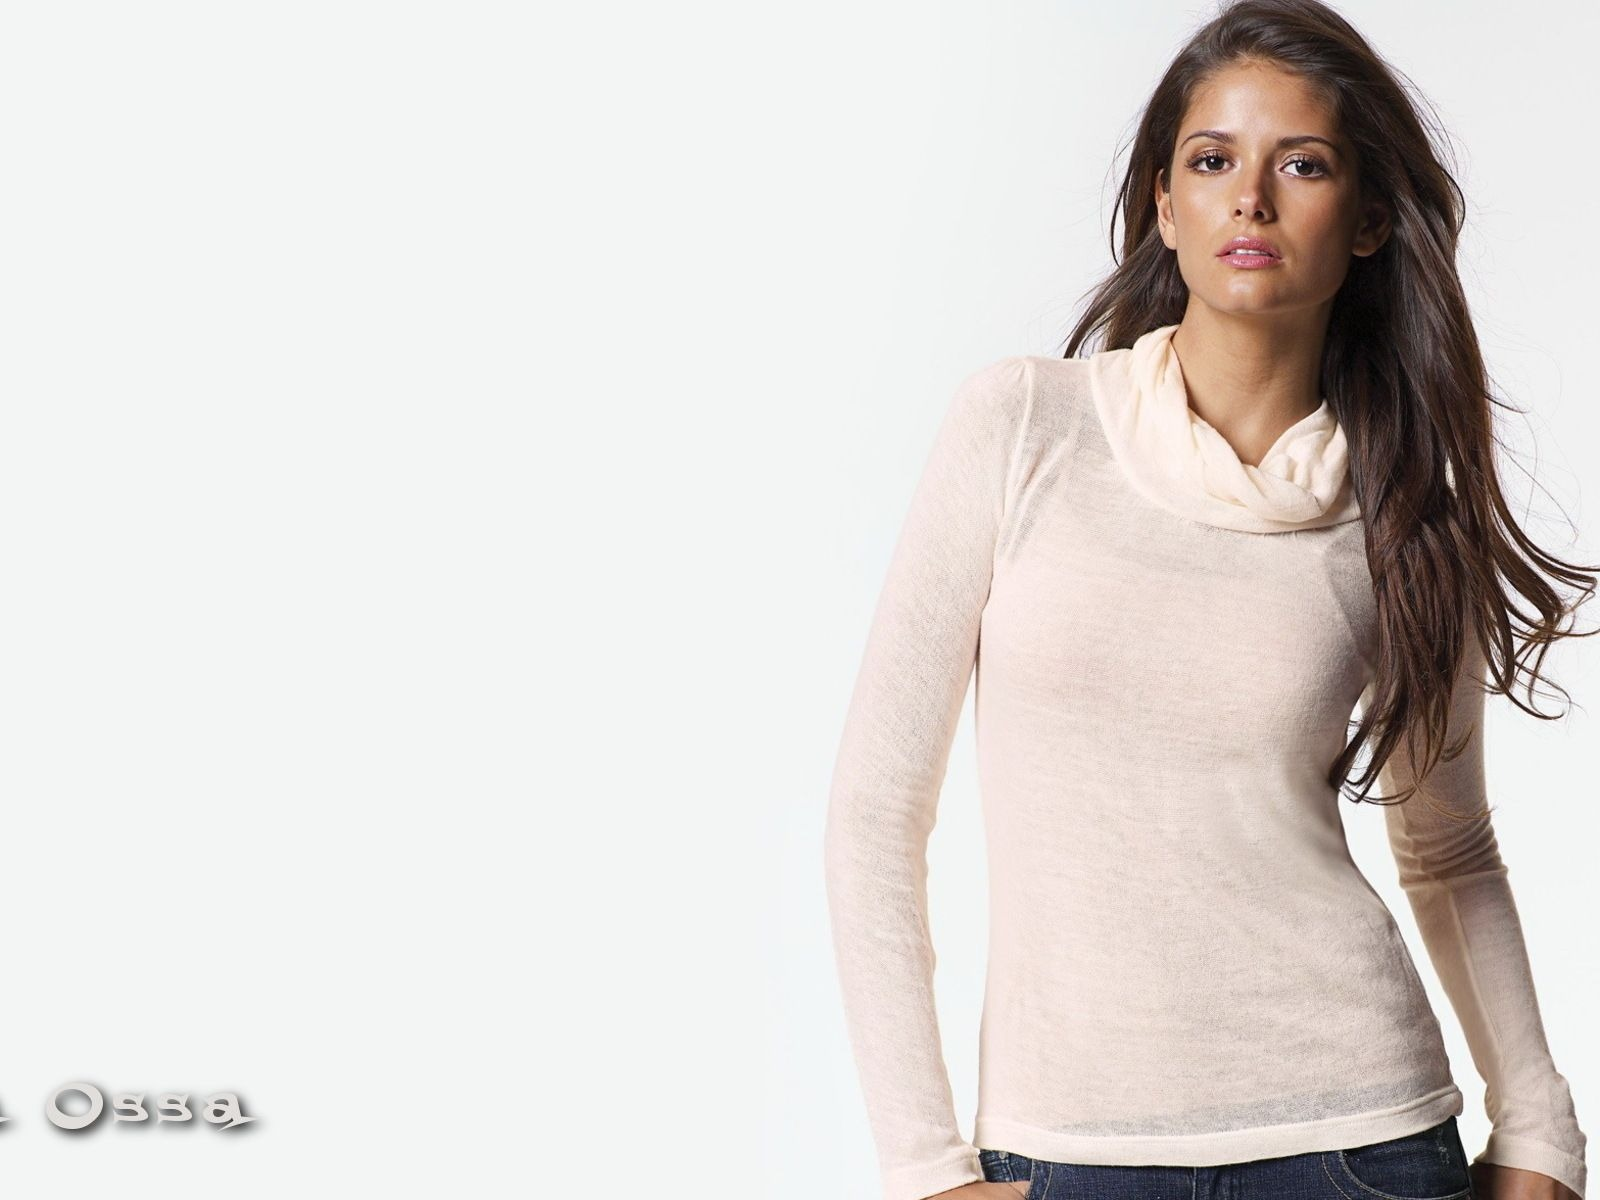 Carla Ossa #049 - 1600x1200 Wallpapers Pictures Photos Images